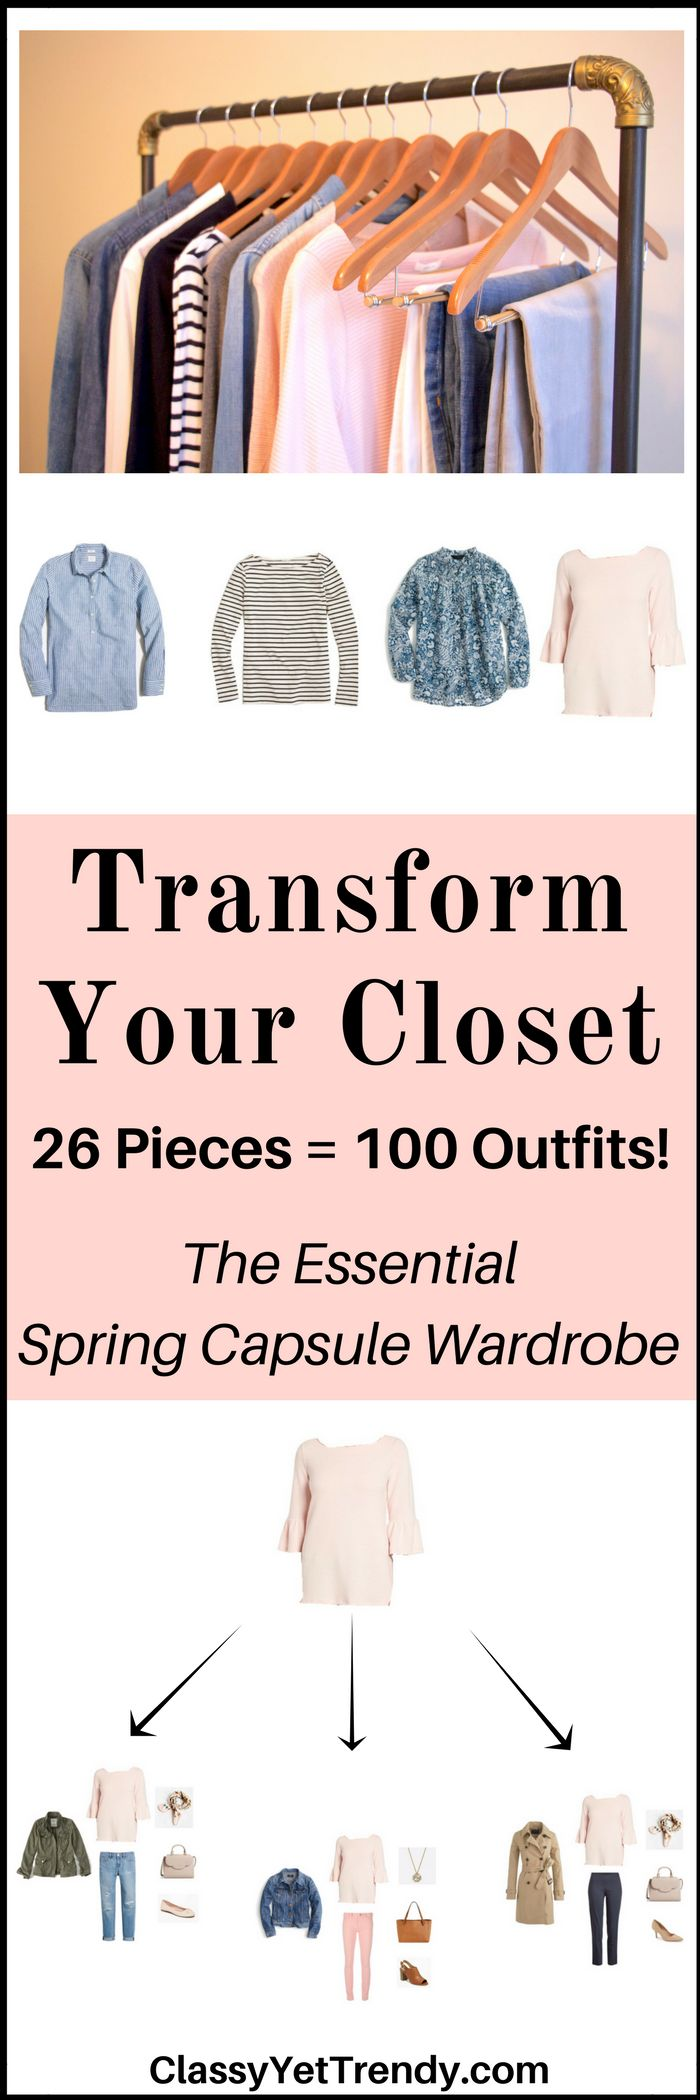 Is your closet full of clothes, but you have nothing to wear? You need… The Essential Capsule Wardrobe e-Book: Spring 2017 Collection! A complete capsule wardrobe guide for the Spring season, With all clothes and shoes* selected for you PLUS, 100 Complete Outfit Ideas! Clothes Style: Classic and Trendy clothes…